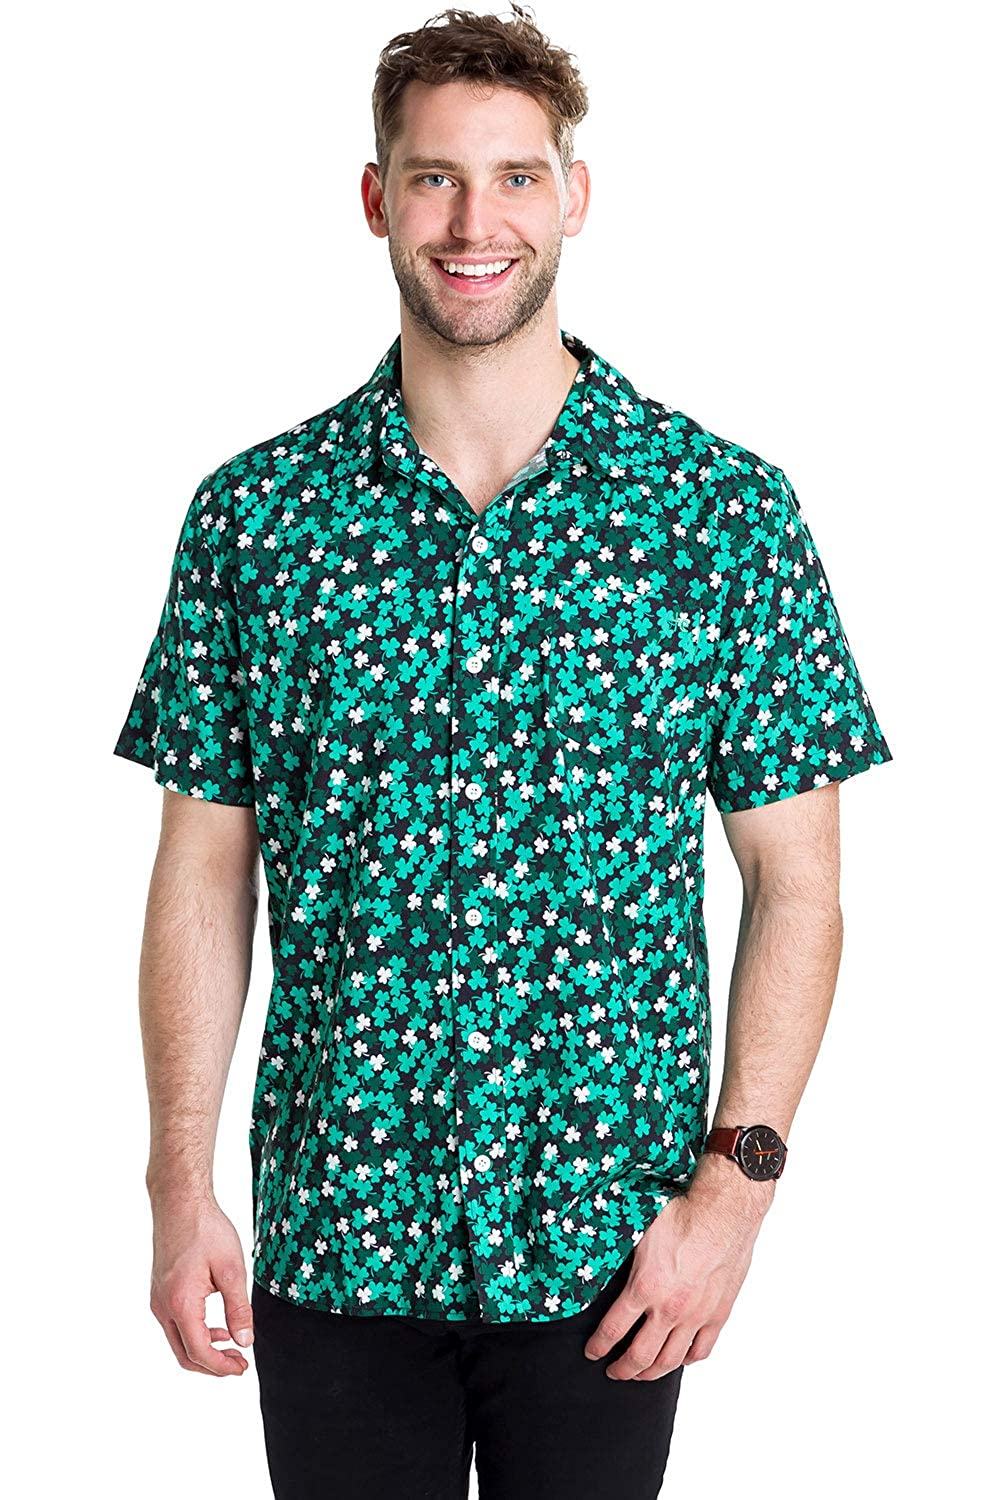 Mens St Patricks Day Button Down Shirt St Paddys Hawaiian Shirt for Guys